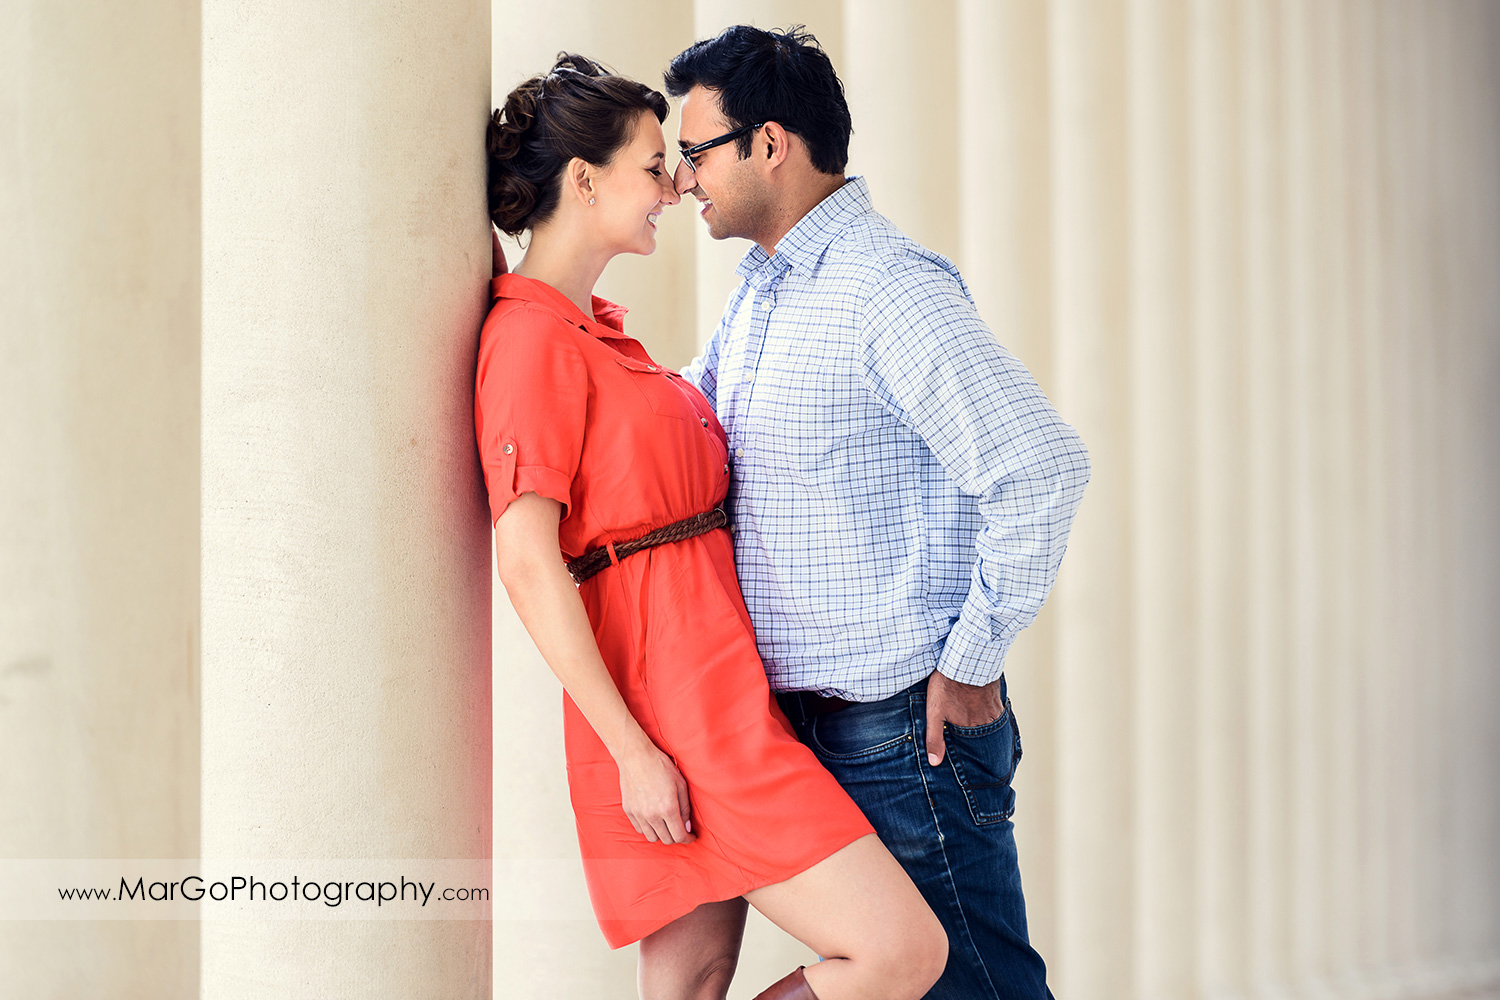 3/4 portrait of woman in red dress and man in blue shirt looking at each other with white columns background during engagement session at San Francisco Legion of Honor